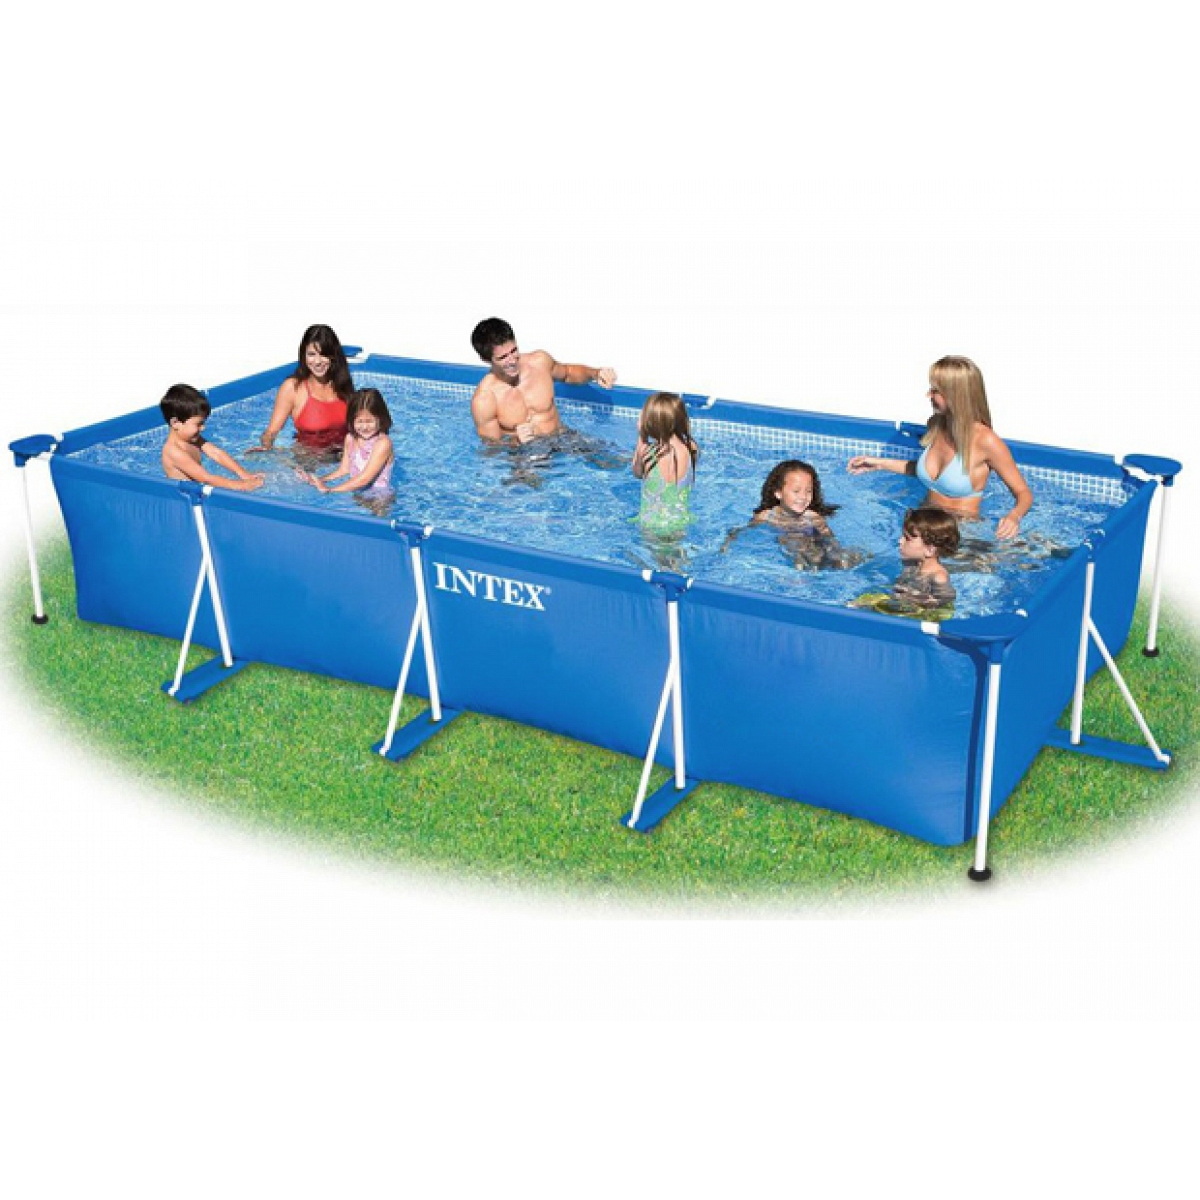 Rectangular pool intex 450x220x84 with metal frame for Pool time pools